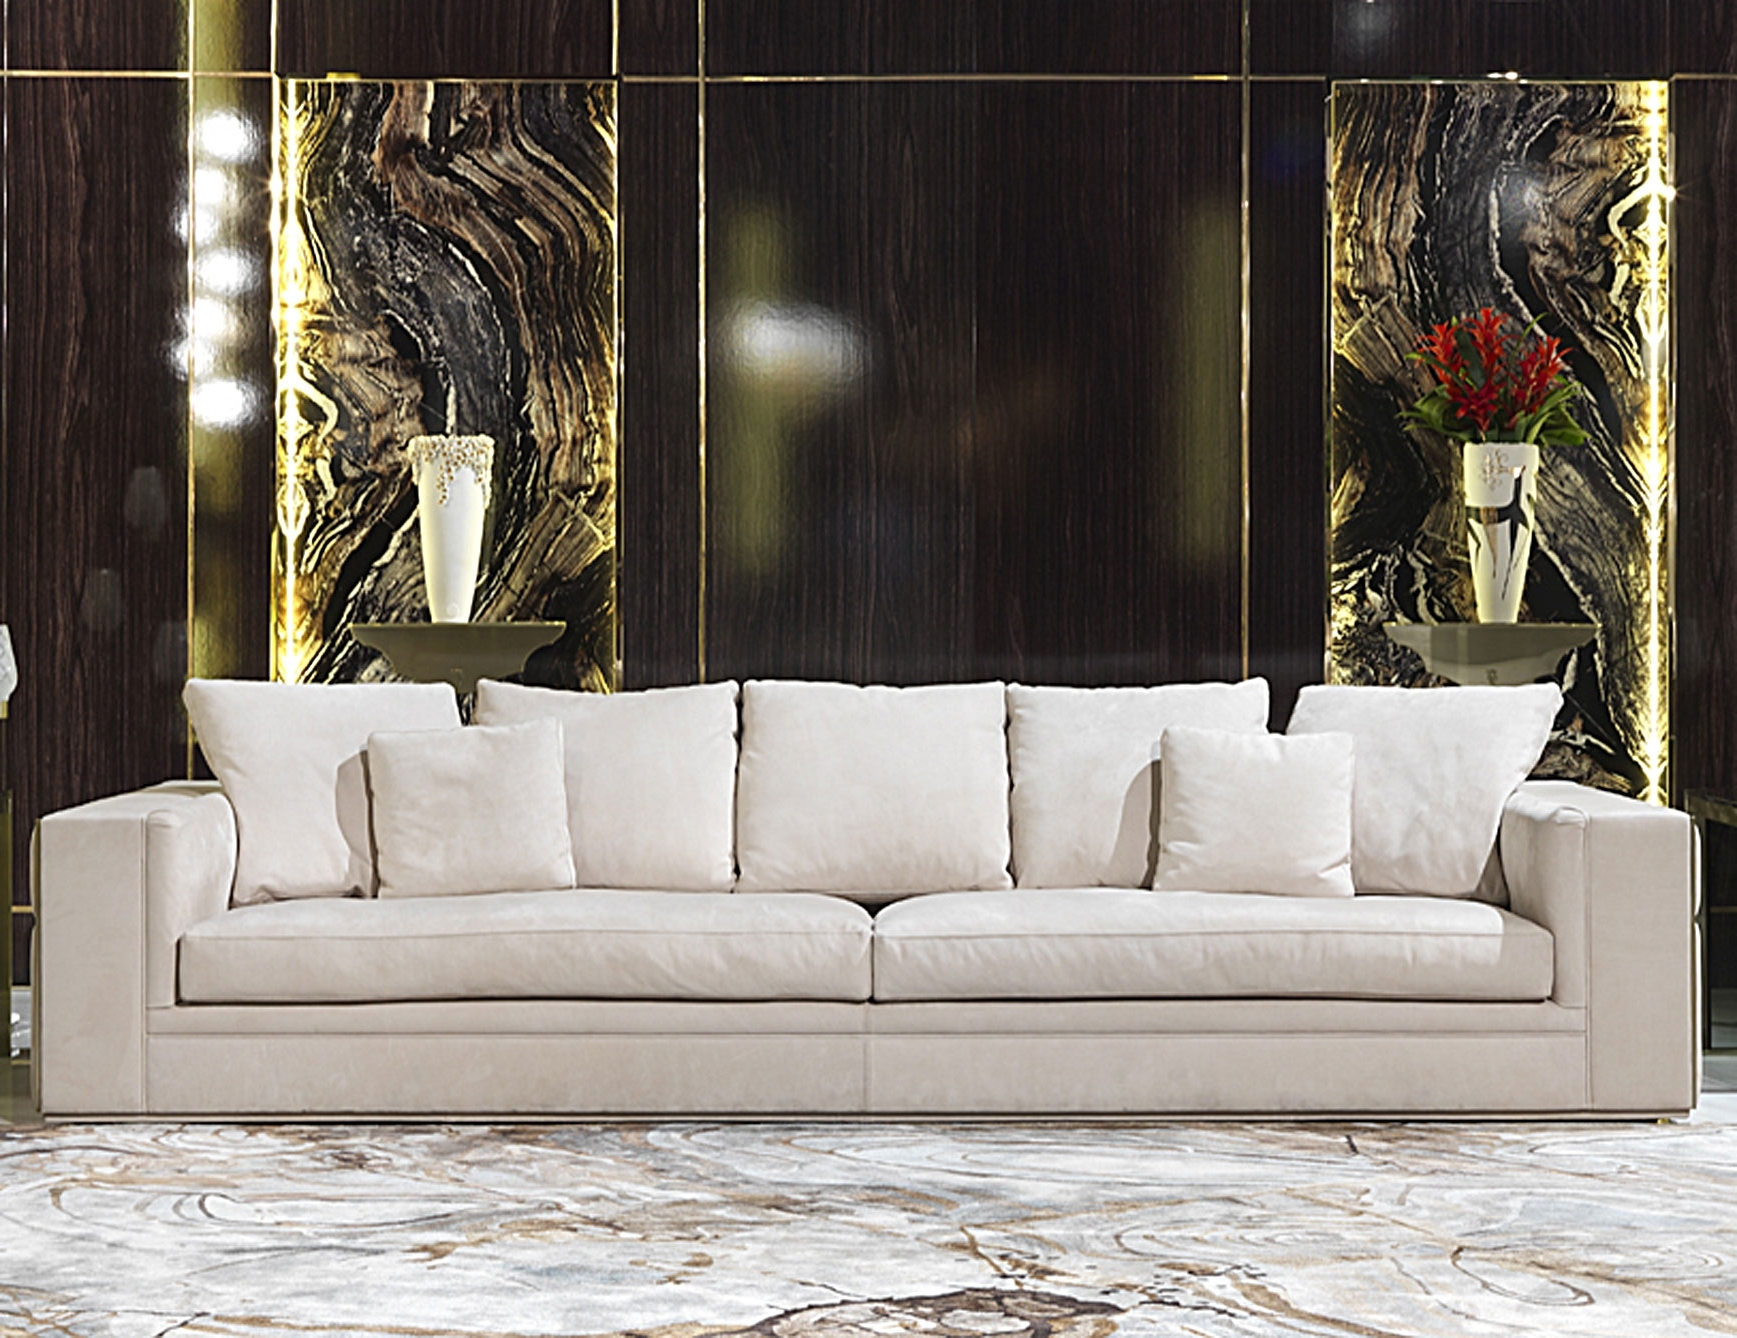 Most Up To Date Luxury Sofas Intended For Nella Vetrina Visionnaire Ipe Cavalli Babylon Luxury Italian Sofa (View 2 of 20)